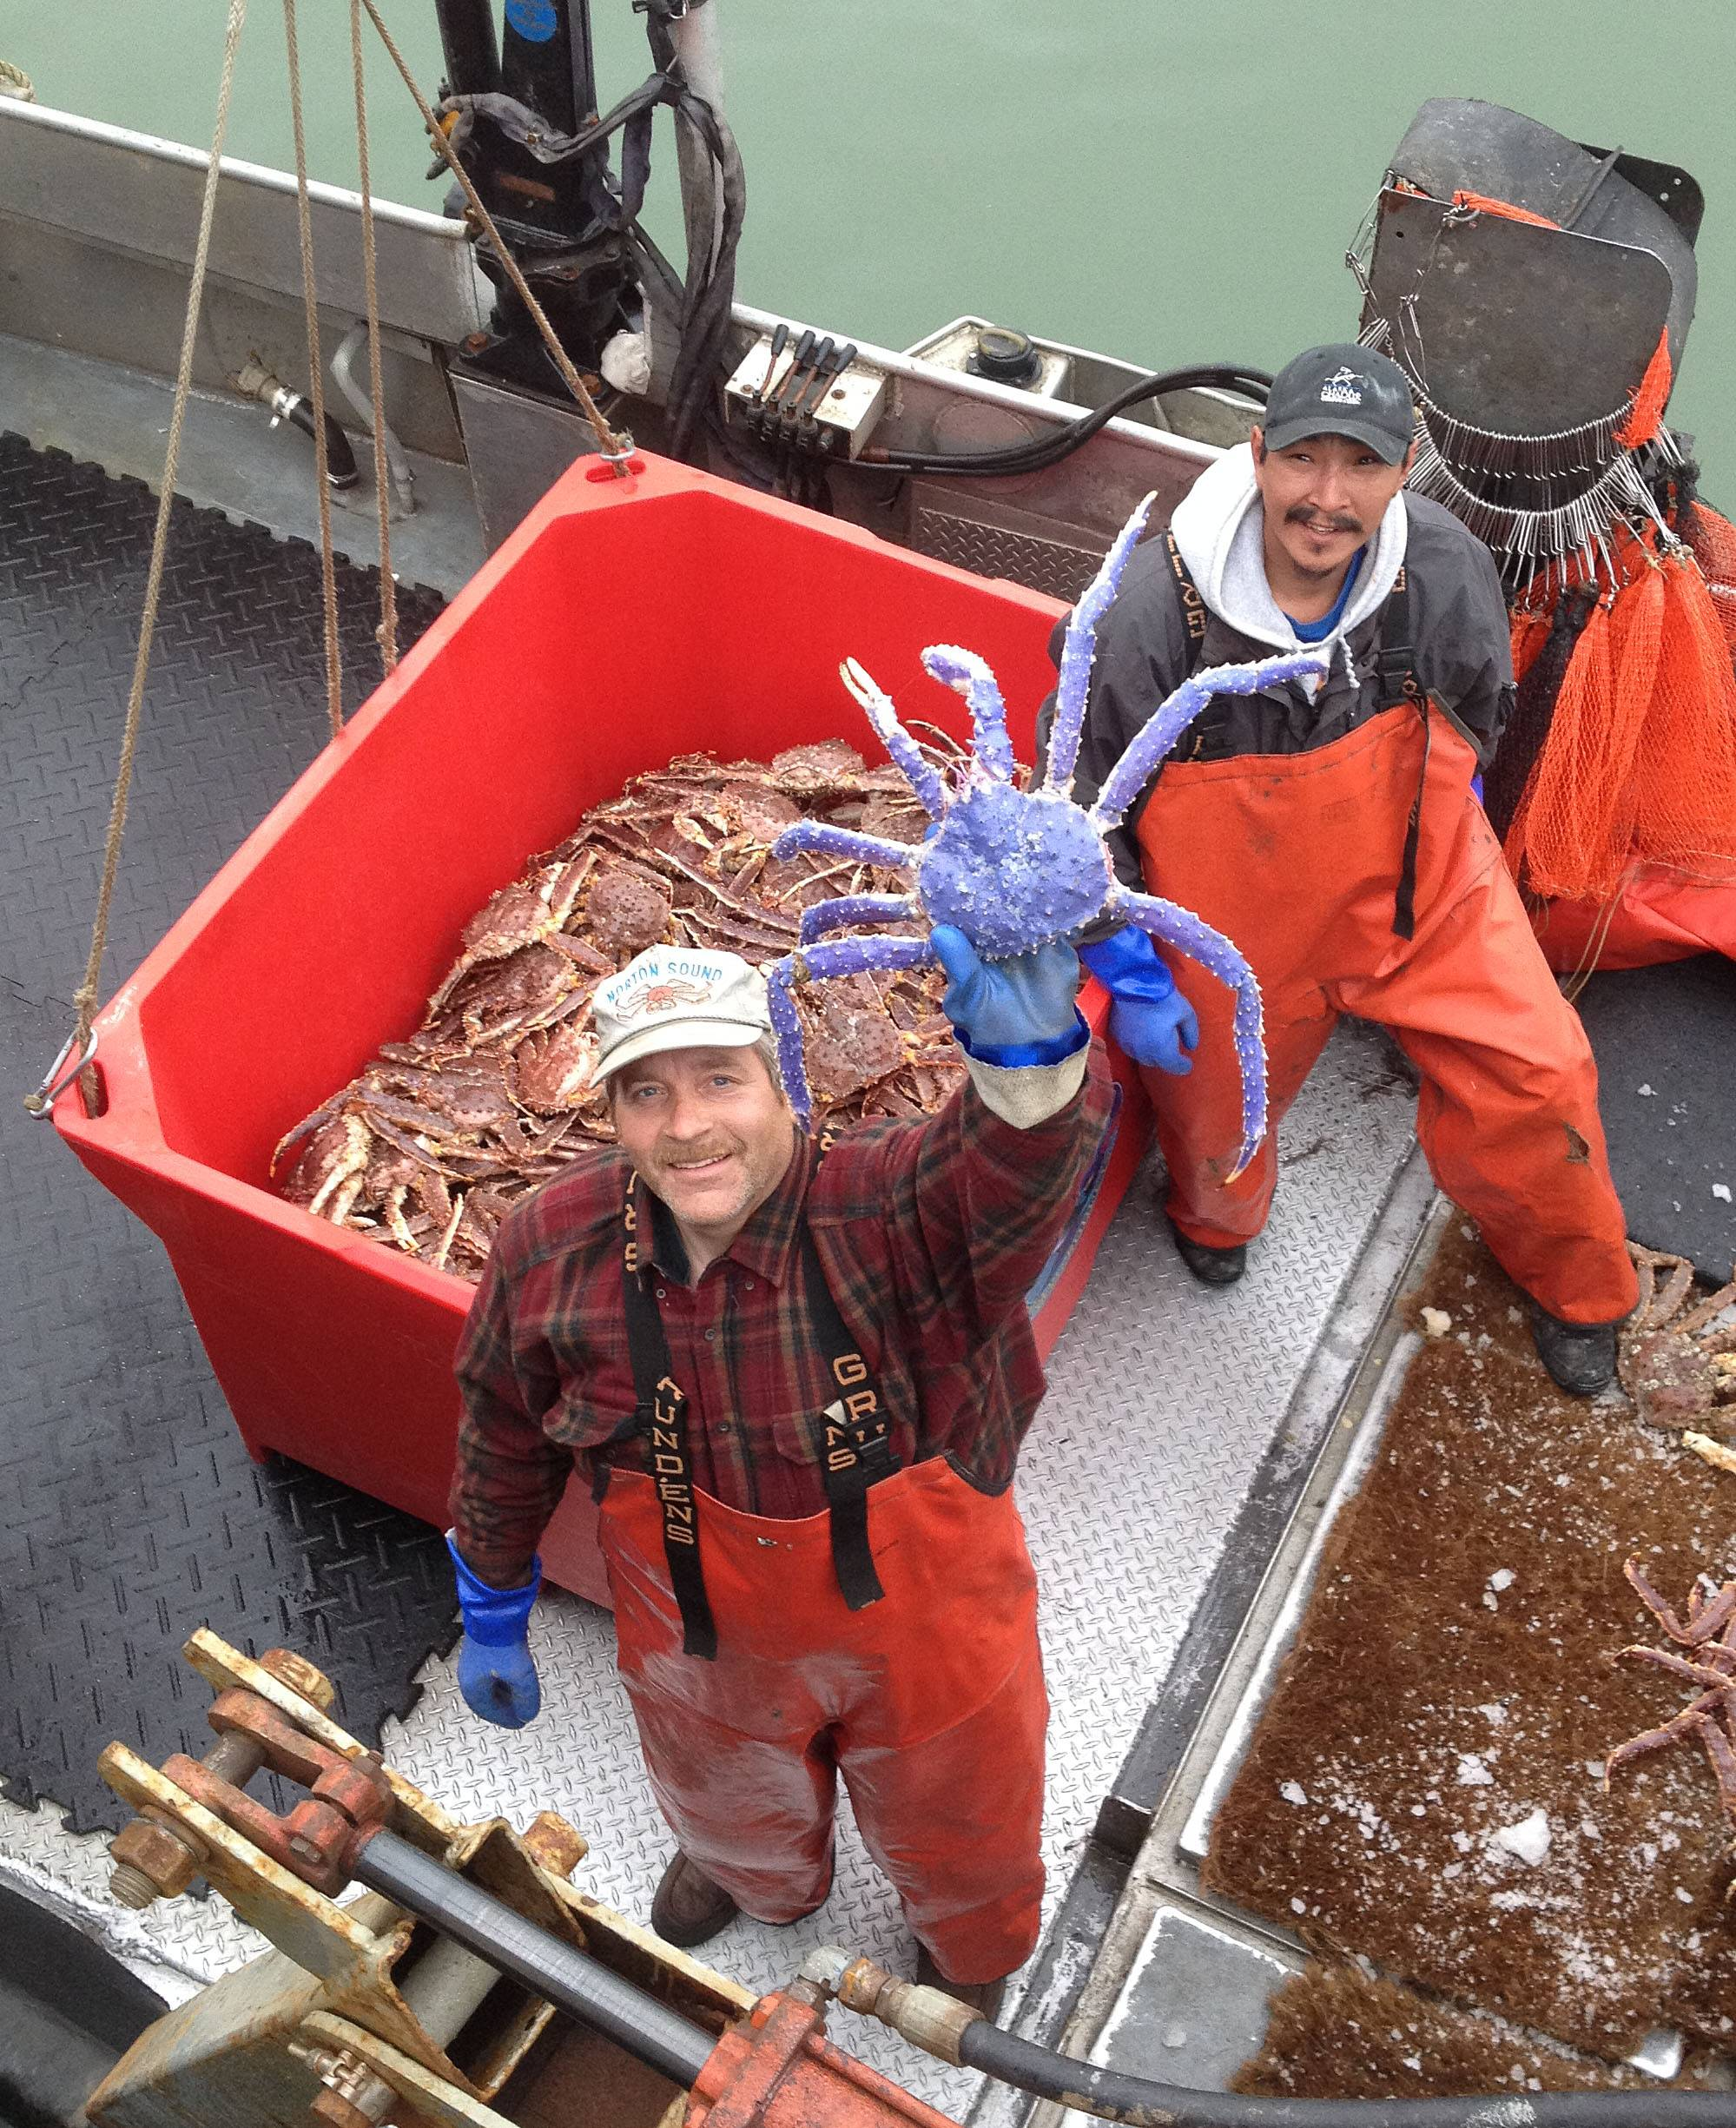 Crab fisherman Frank McFarland, left, holds up a rare blue-colored red king crab he caught in his commercial crabbing pots as Frank Kavairlook Jr., right, looks on in Nome, Alaska. The blue crab is being kept alive at the Norton Sound Seafood Center until McFarland can have it mounted.